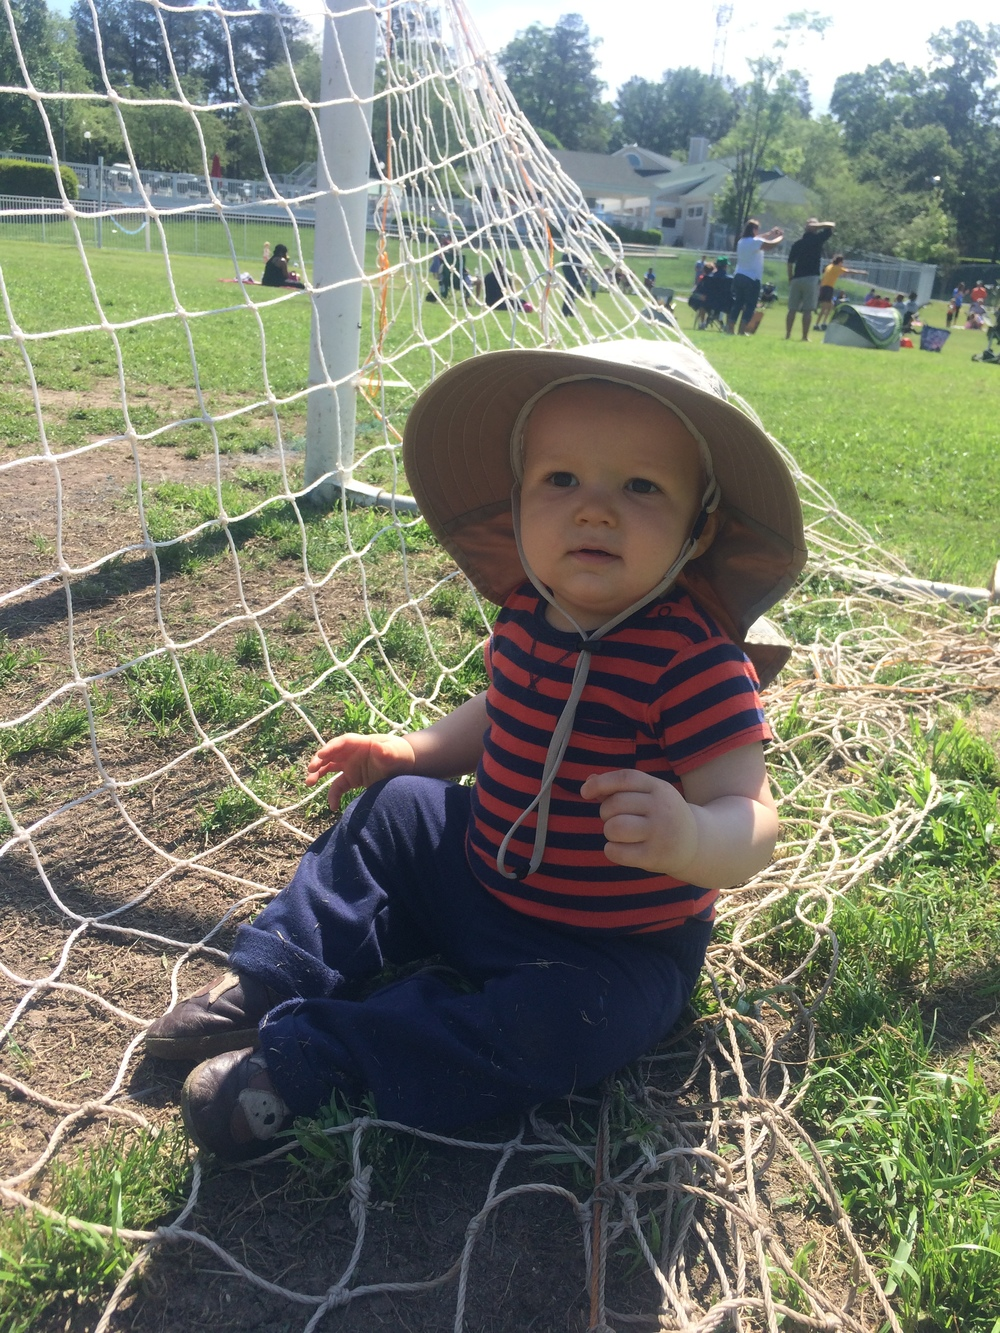 Luka at his big sister's soccer game in April 2015, just hanging out in the net